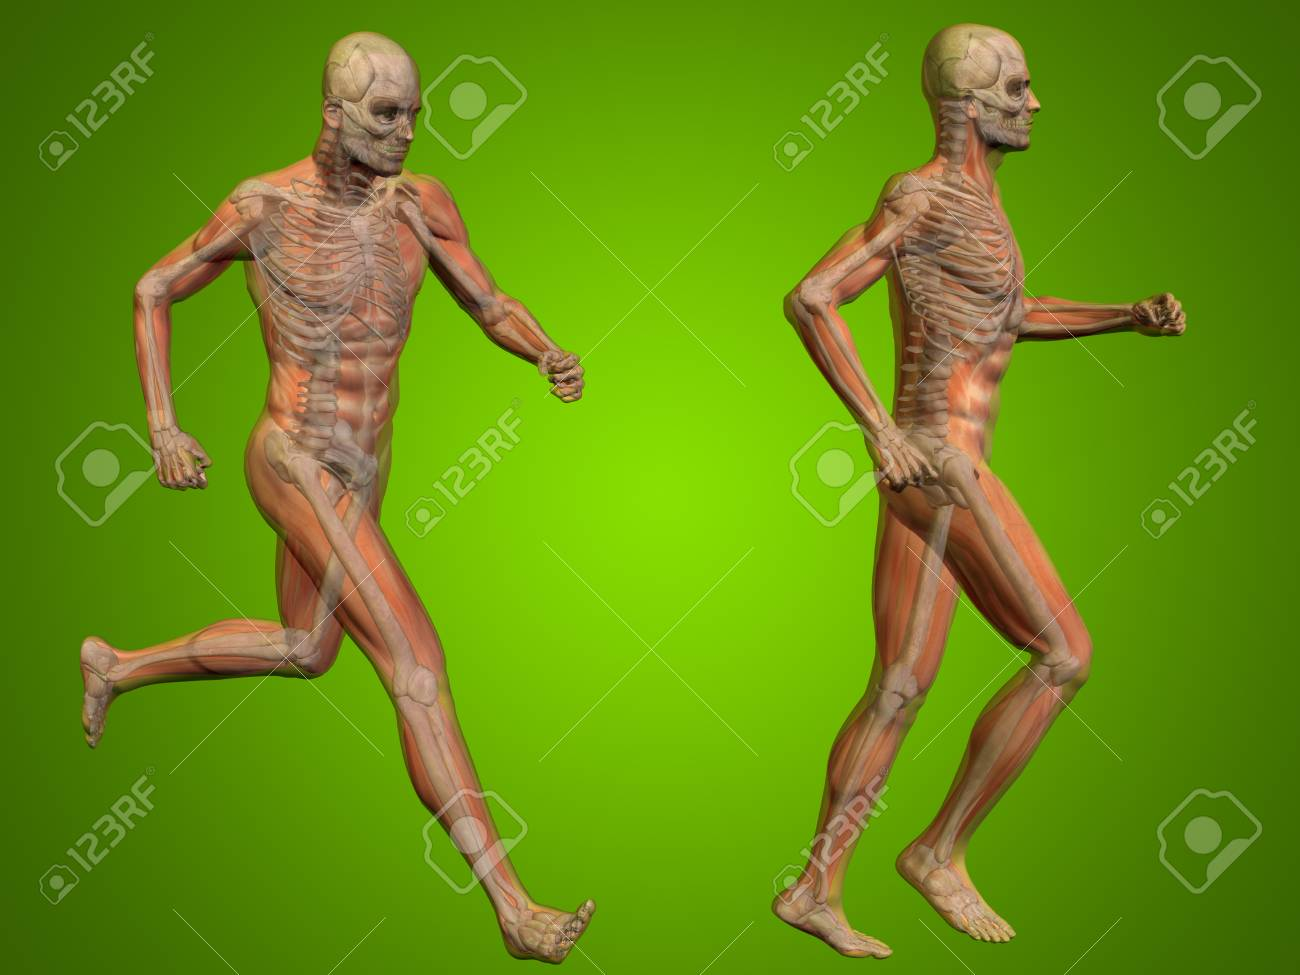 Conceptual Man Or Human 3D Anatomy Or Body On Green Background Stock ...